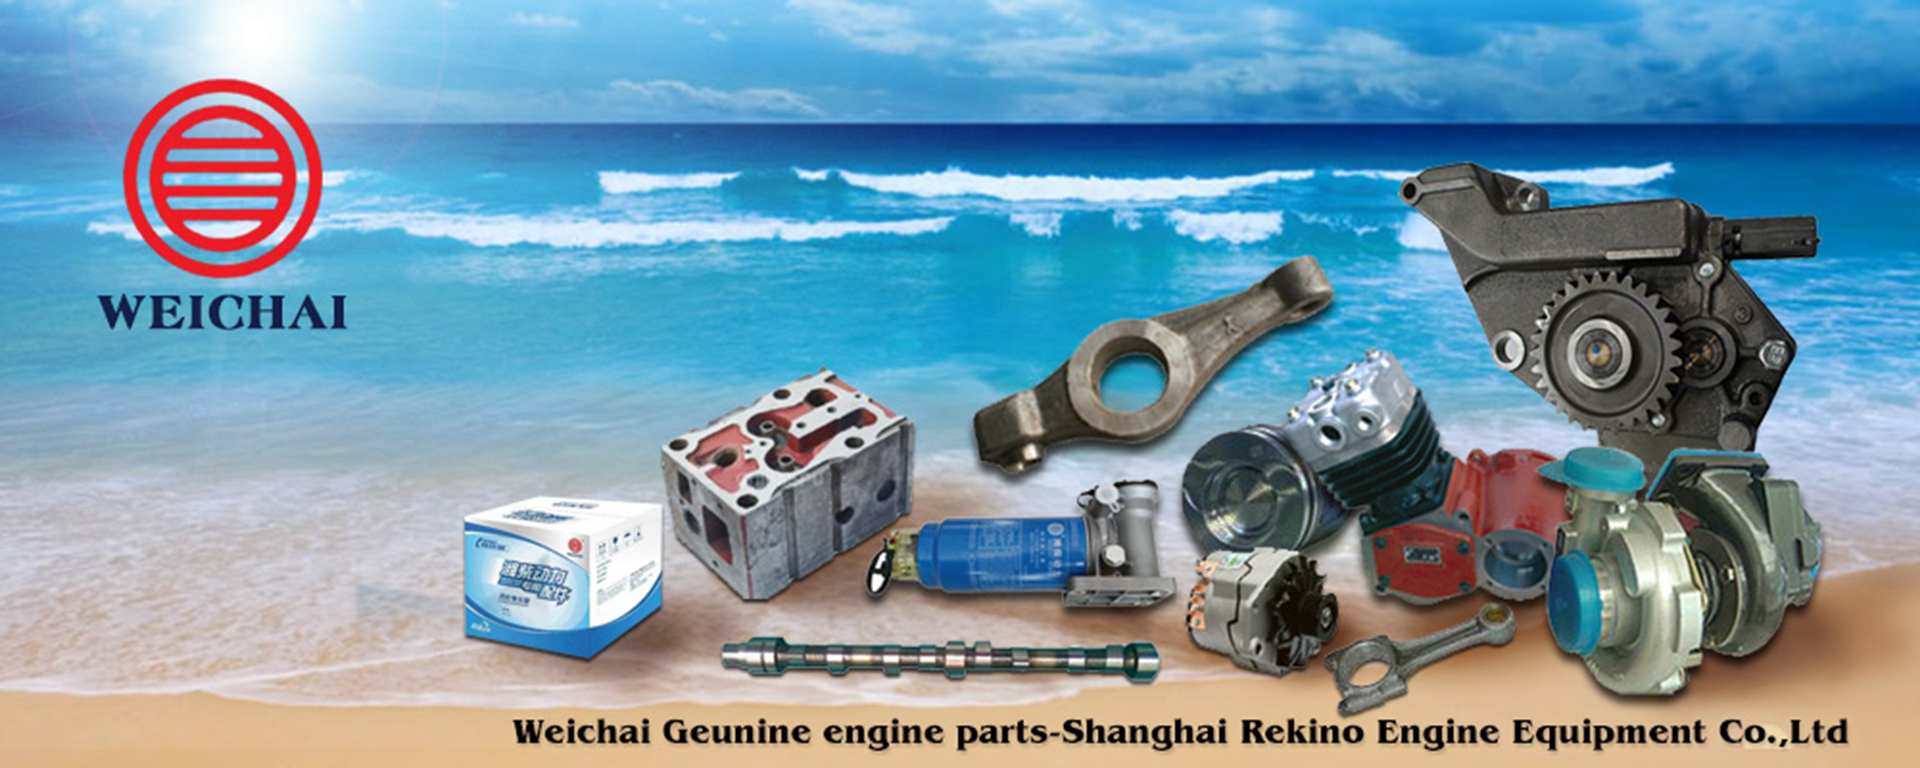 Weichai engine parts